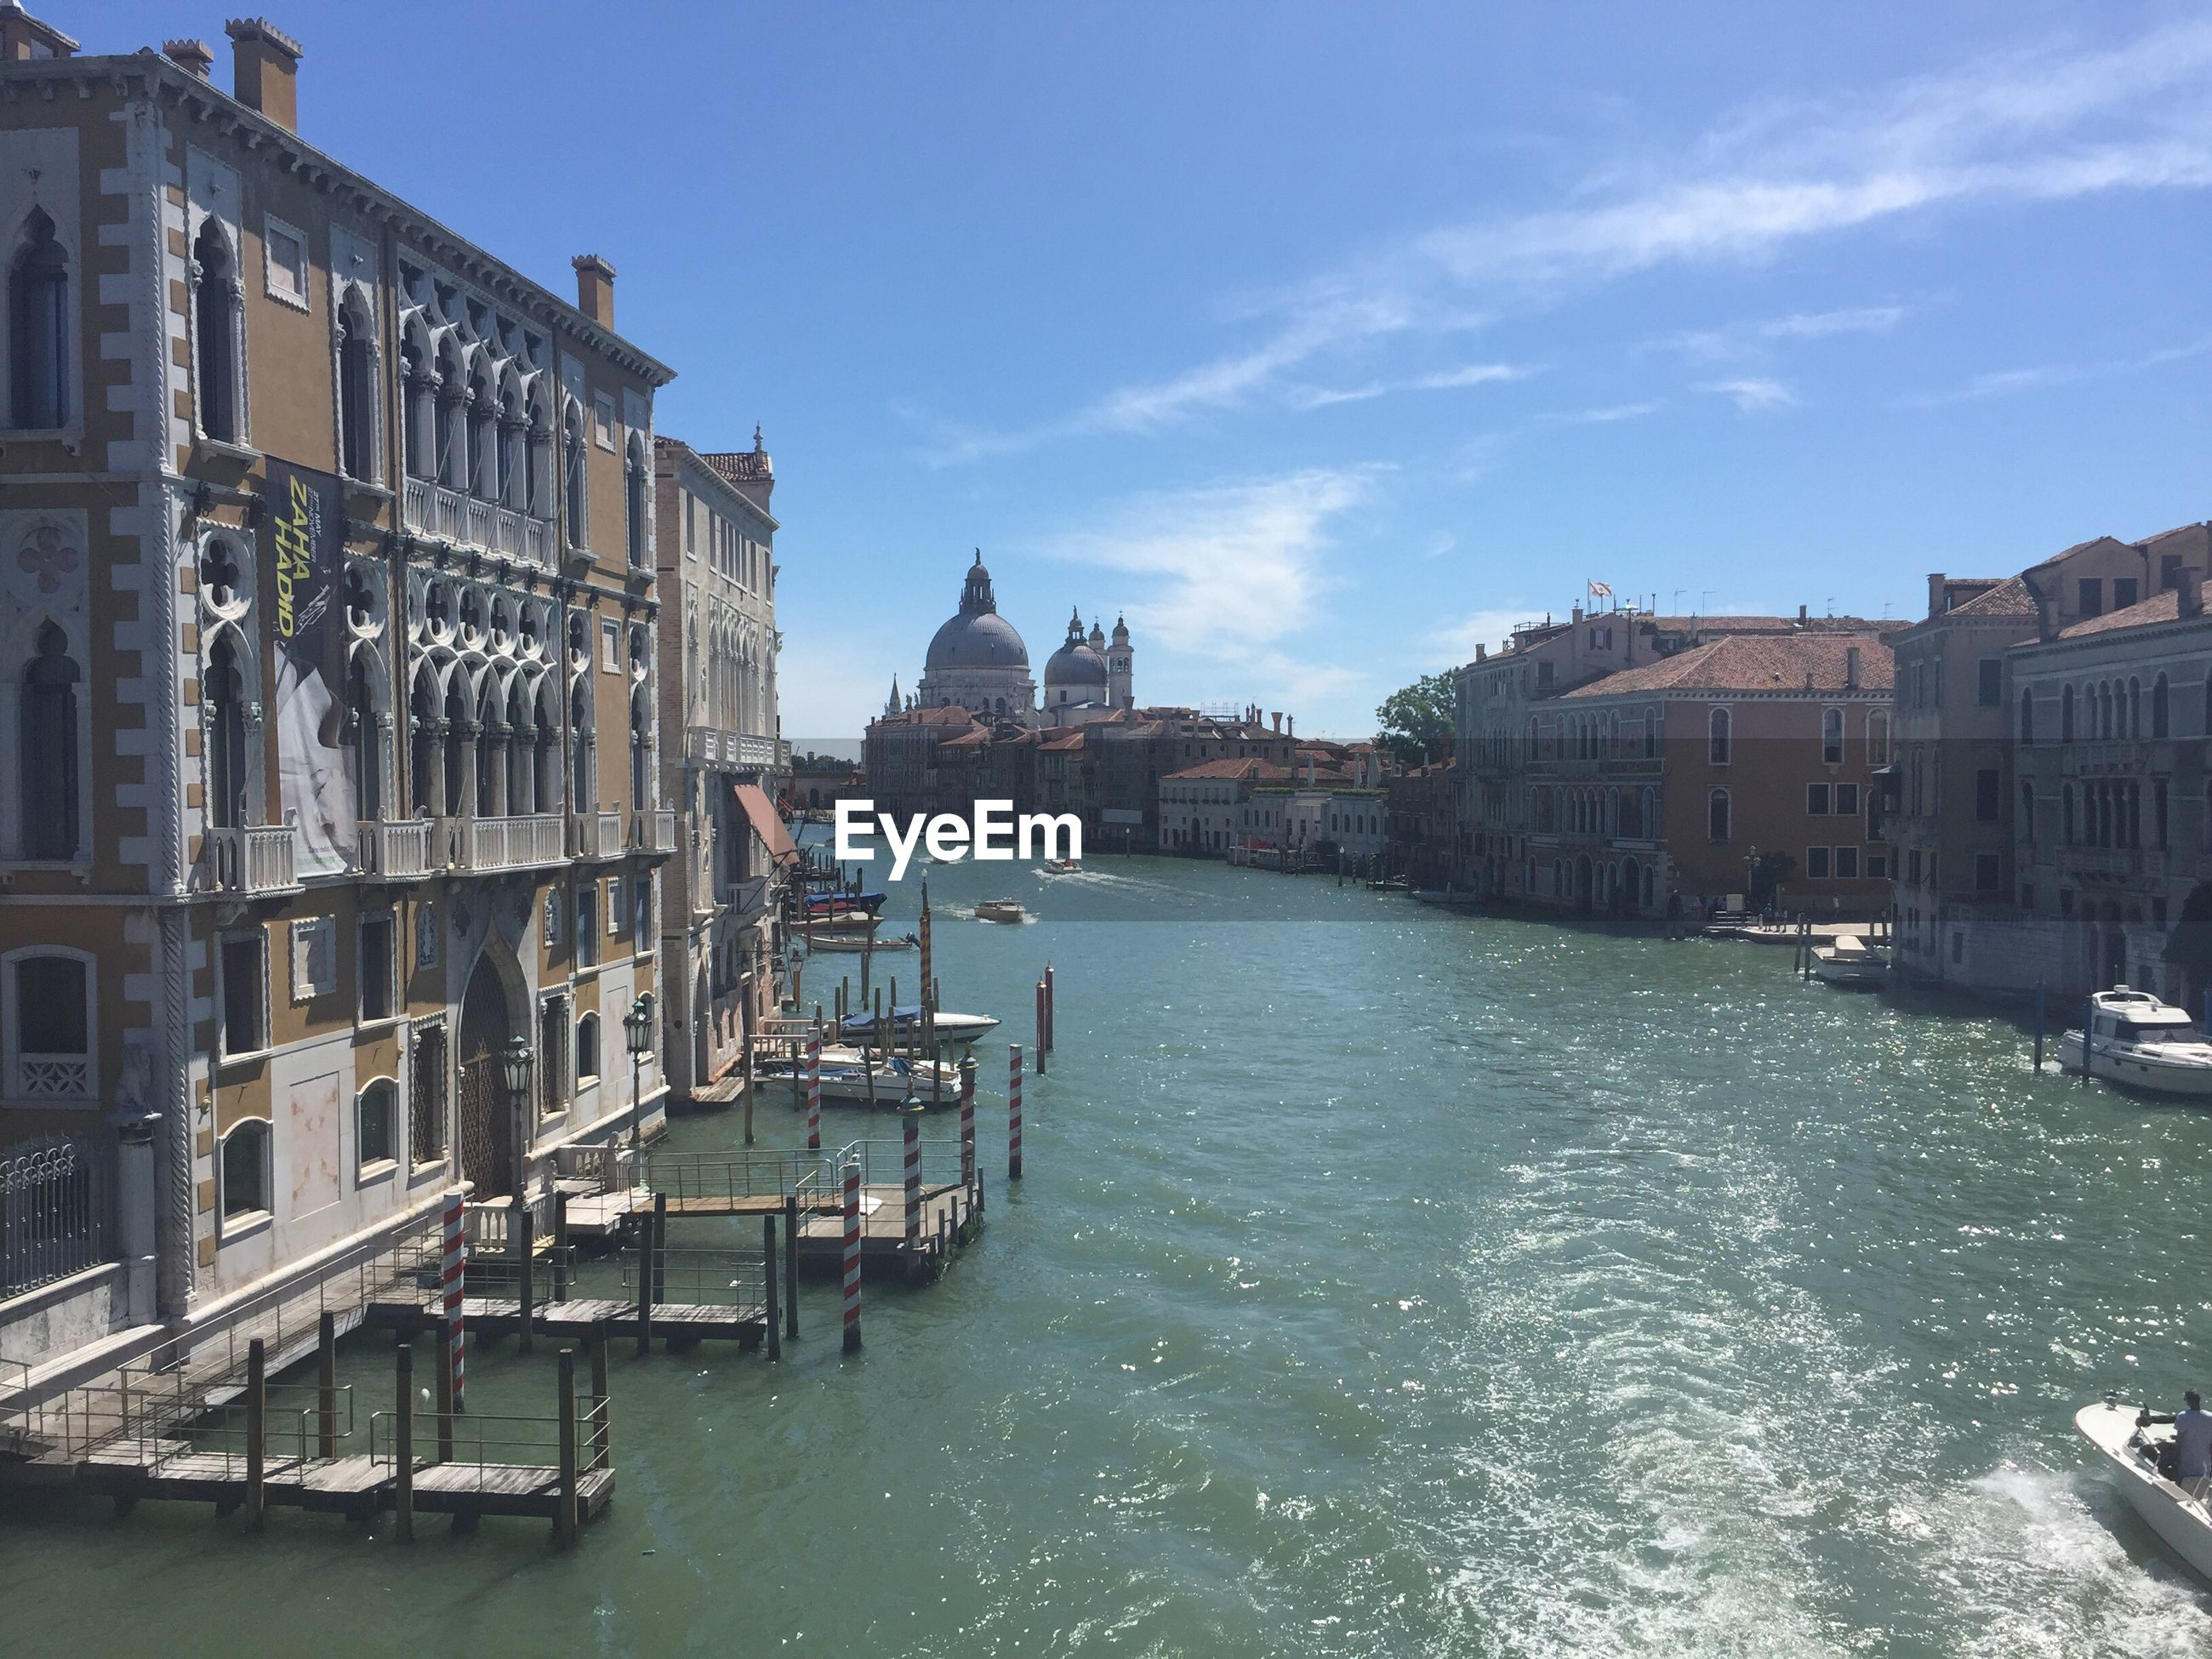 Santa maria della salute by grand canal in city against sky